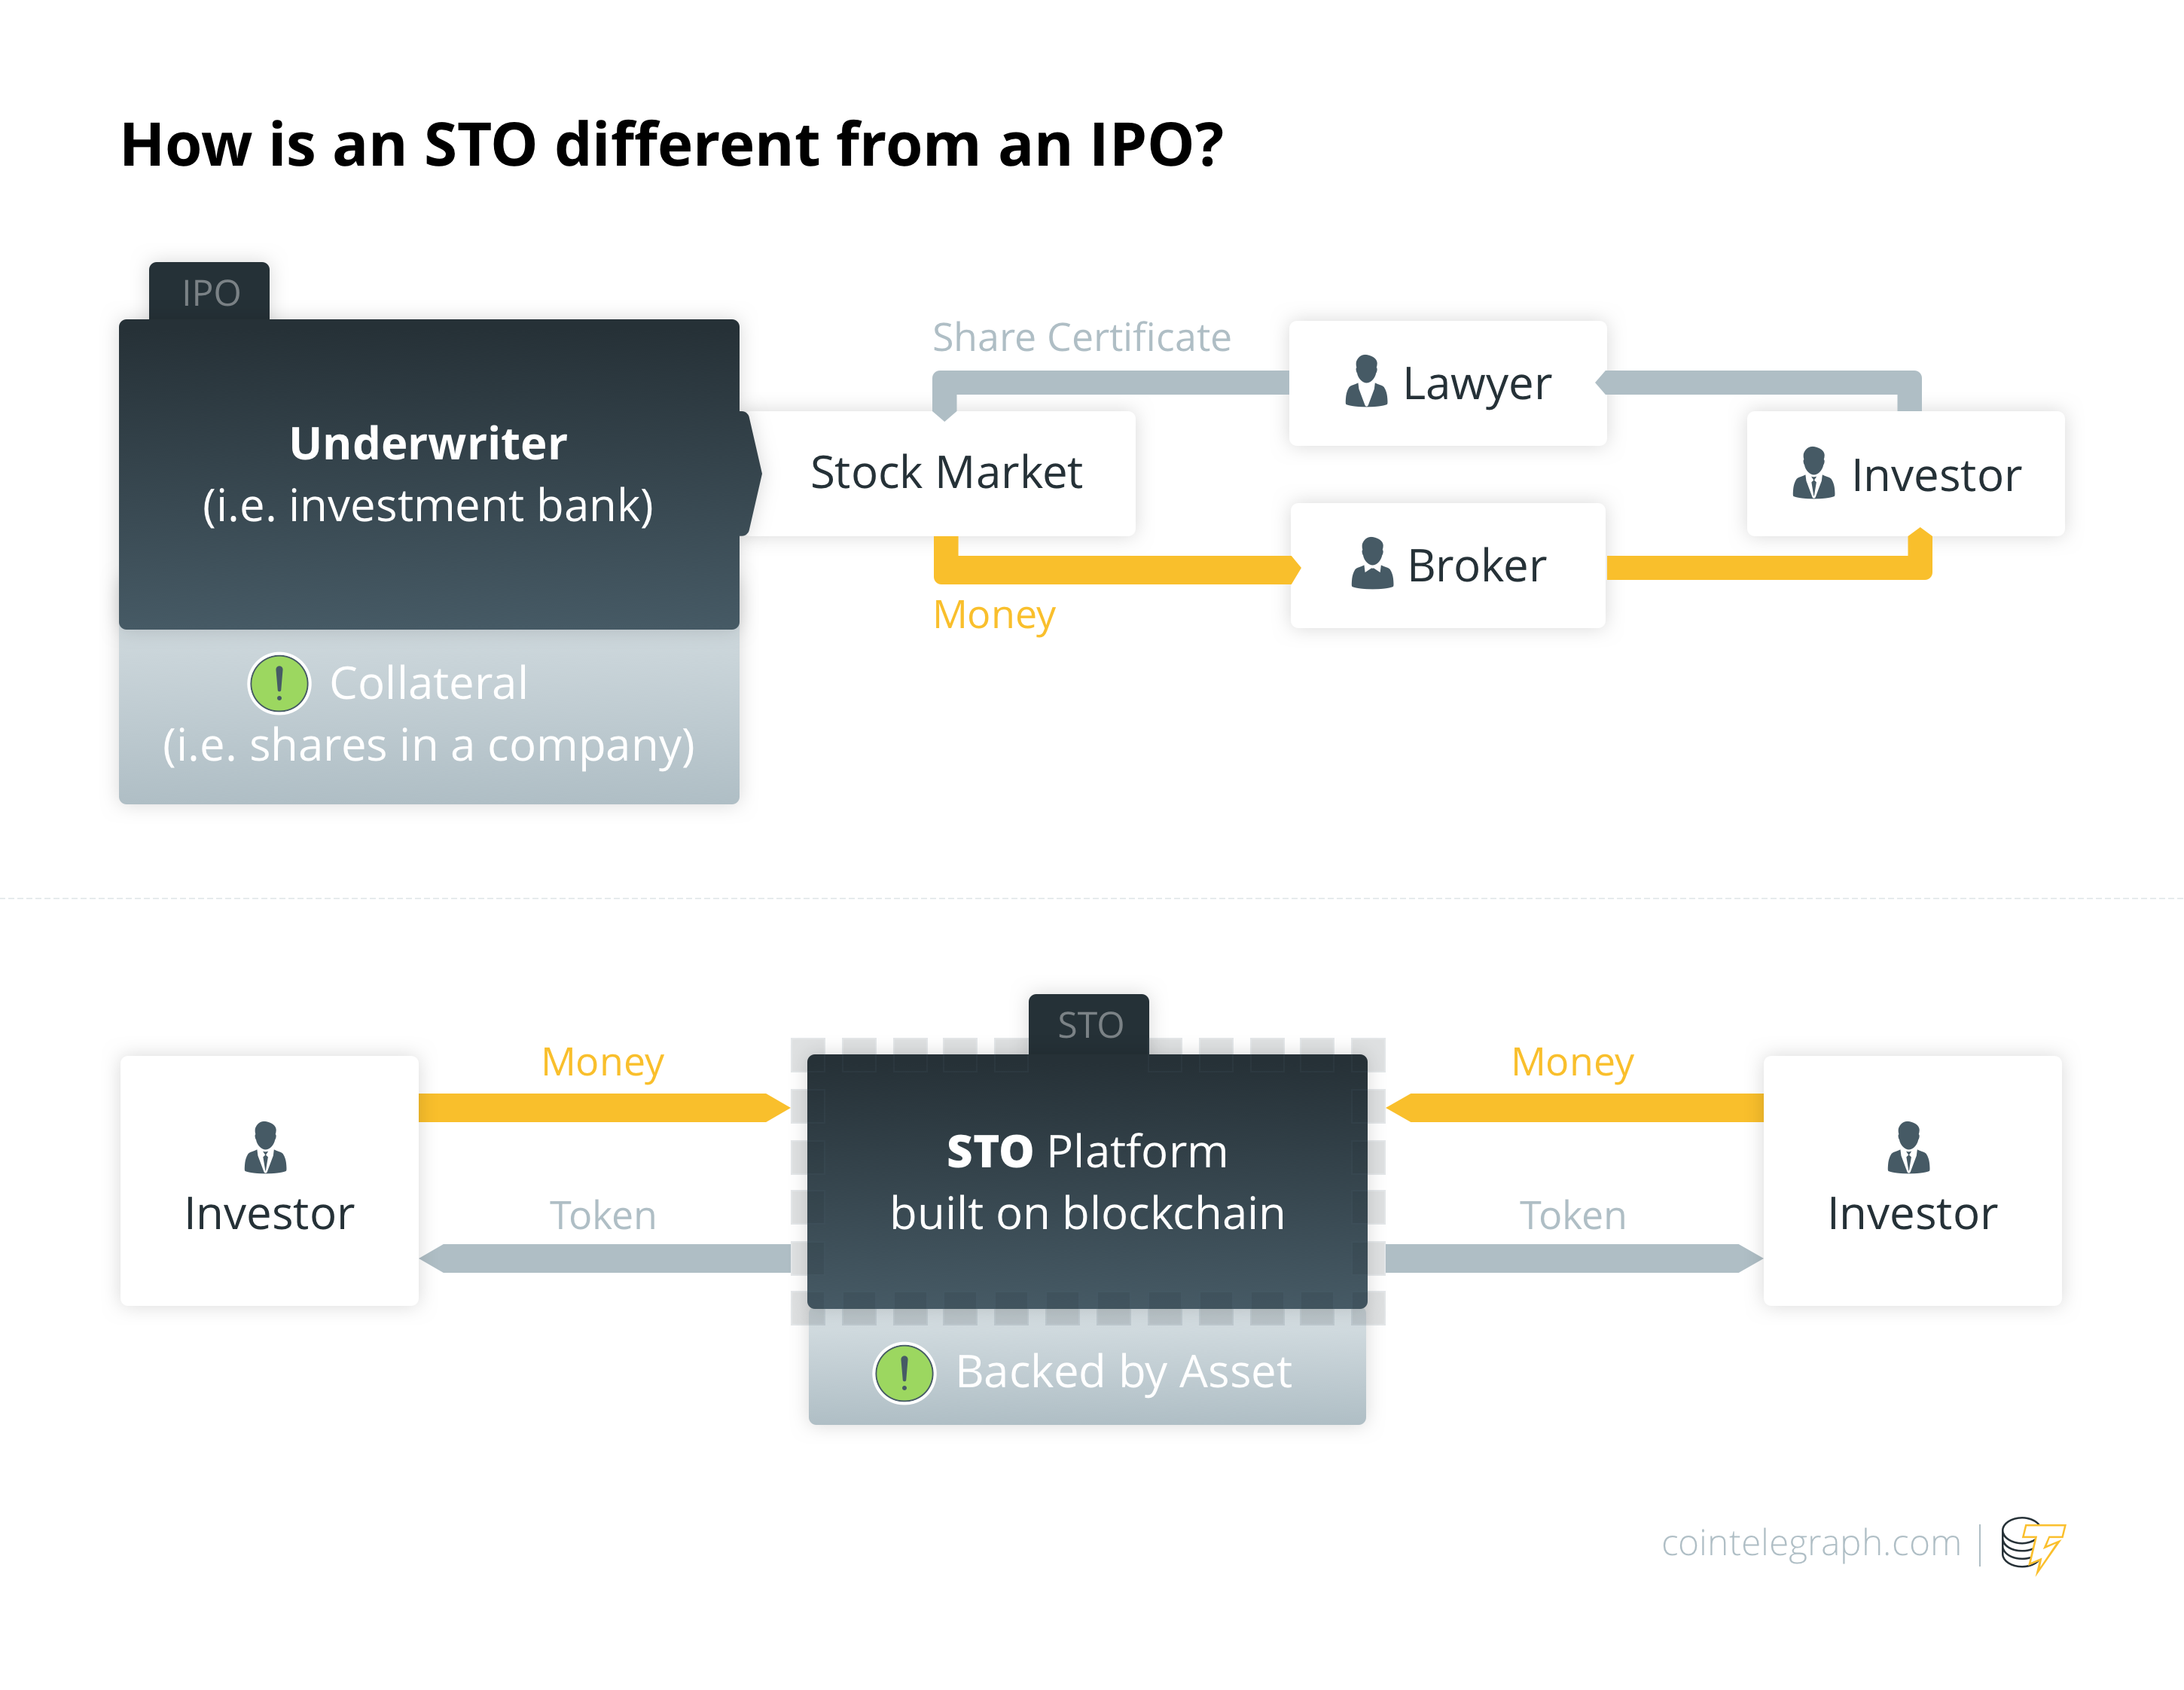 [Source](https://cointelegraph.com/explained/what-is-an-sto-explained) — How is an STO different from an IPO?